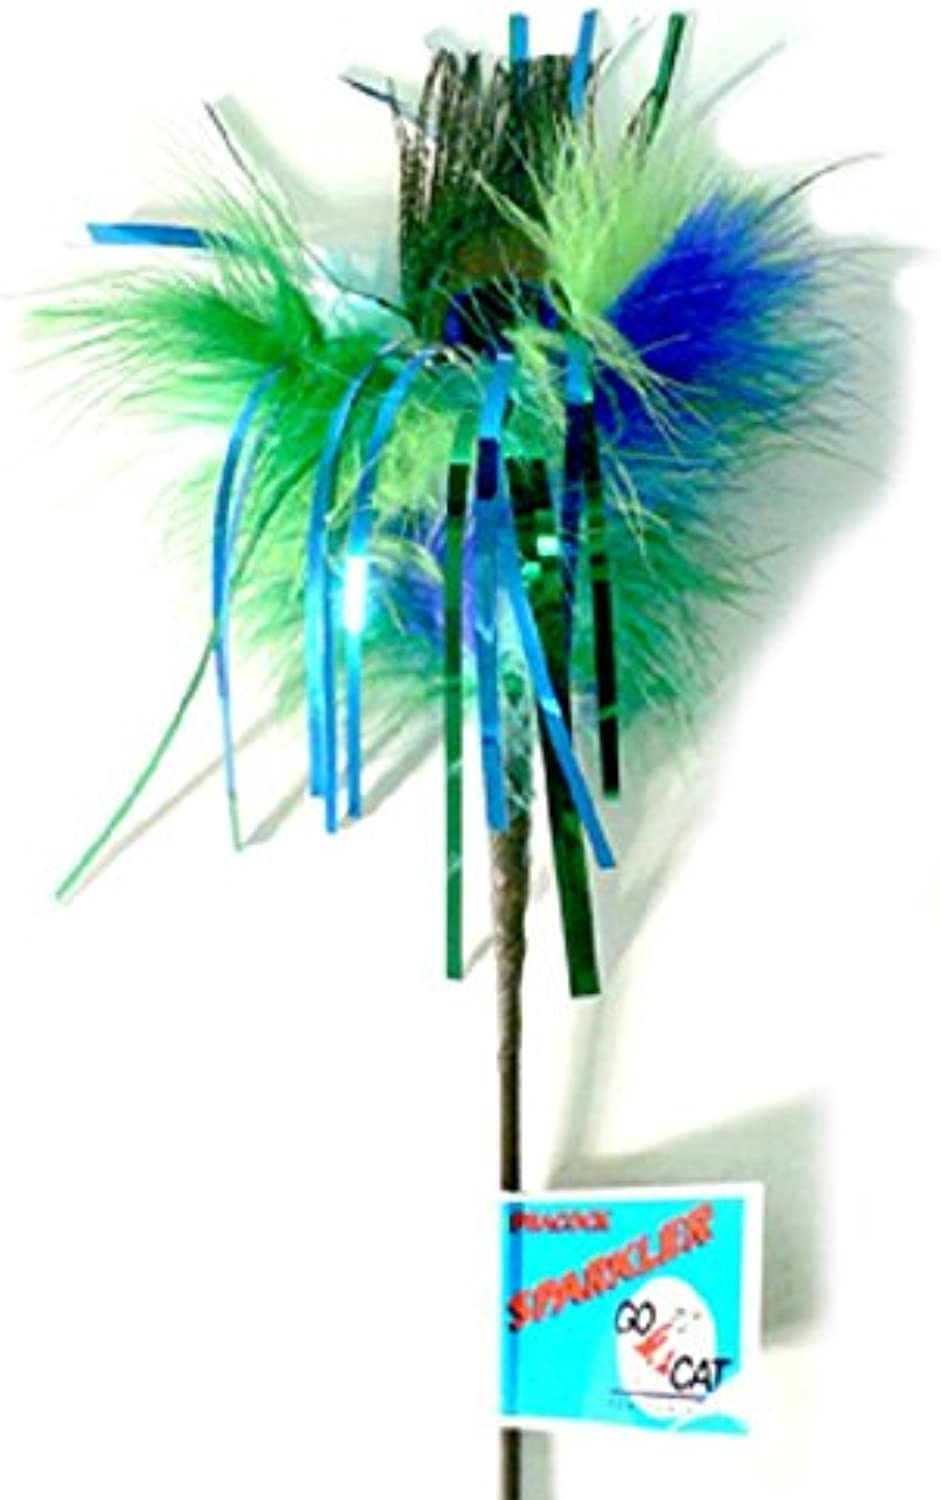 Go Cat Long Peacock Sparkler  36  Cat Toy Teaser from The Maker of Da Bird